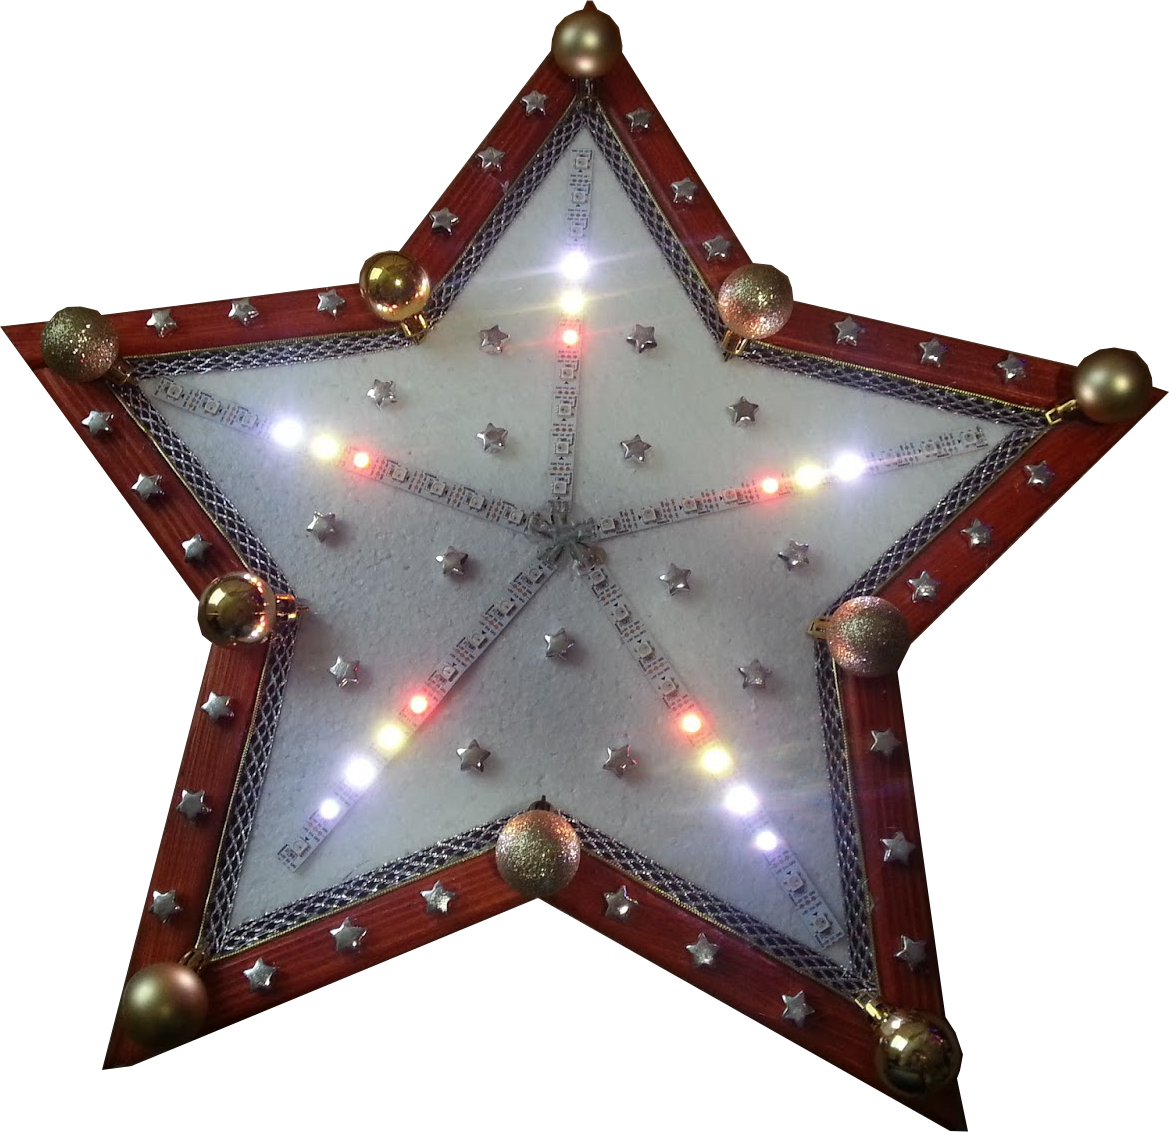 WPQREK - Things that I made!: Christmas Star Ornament made